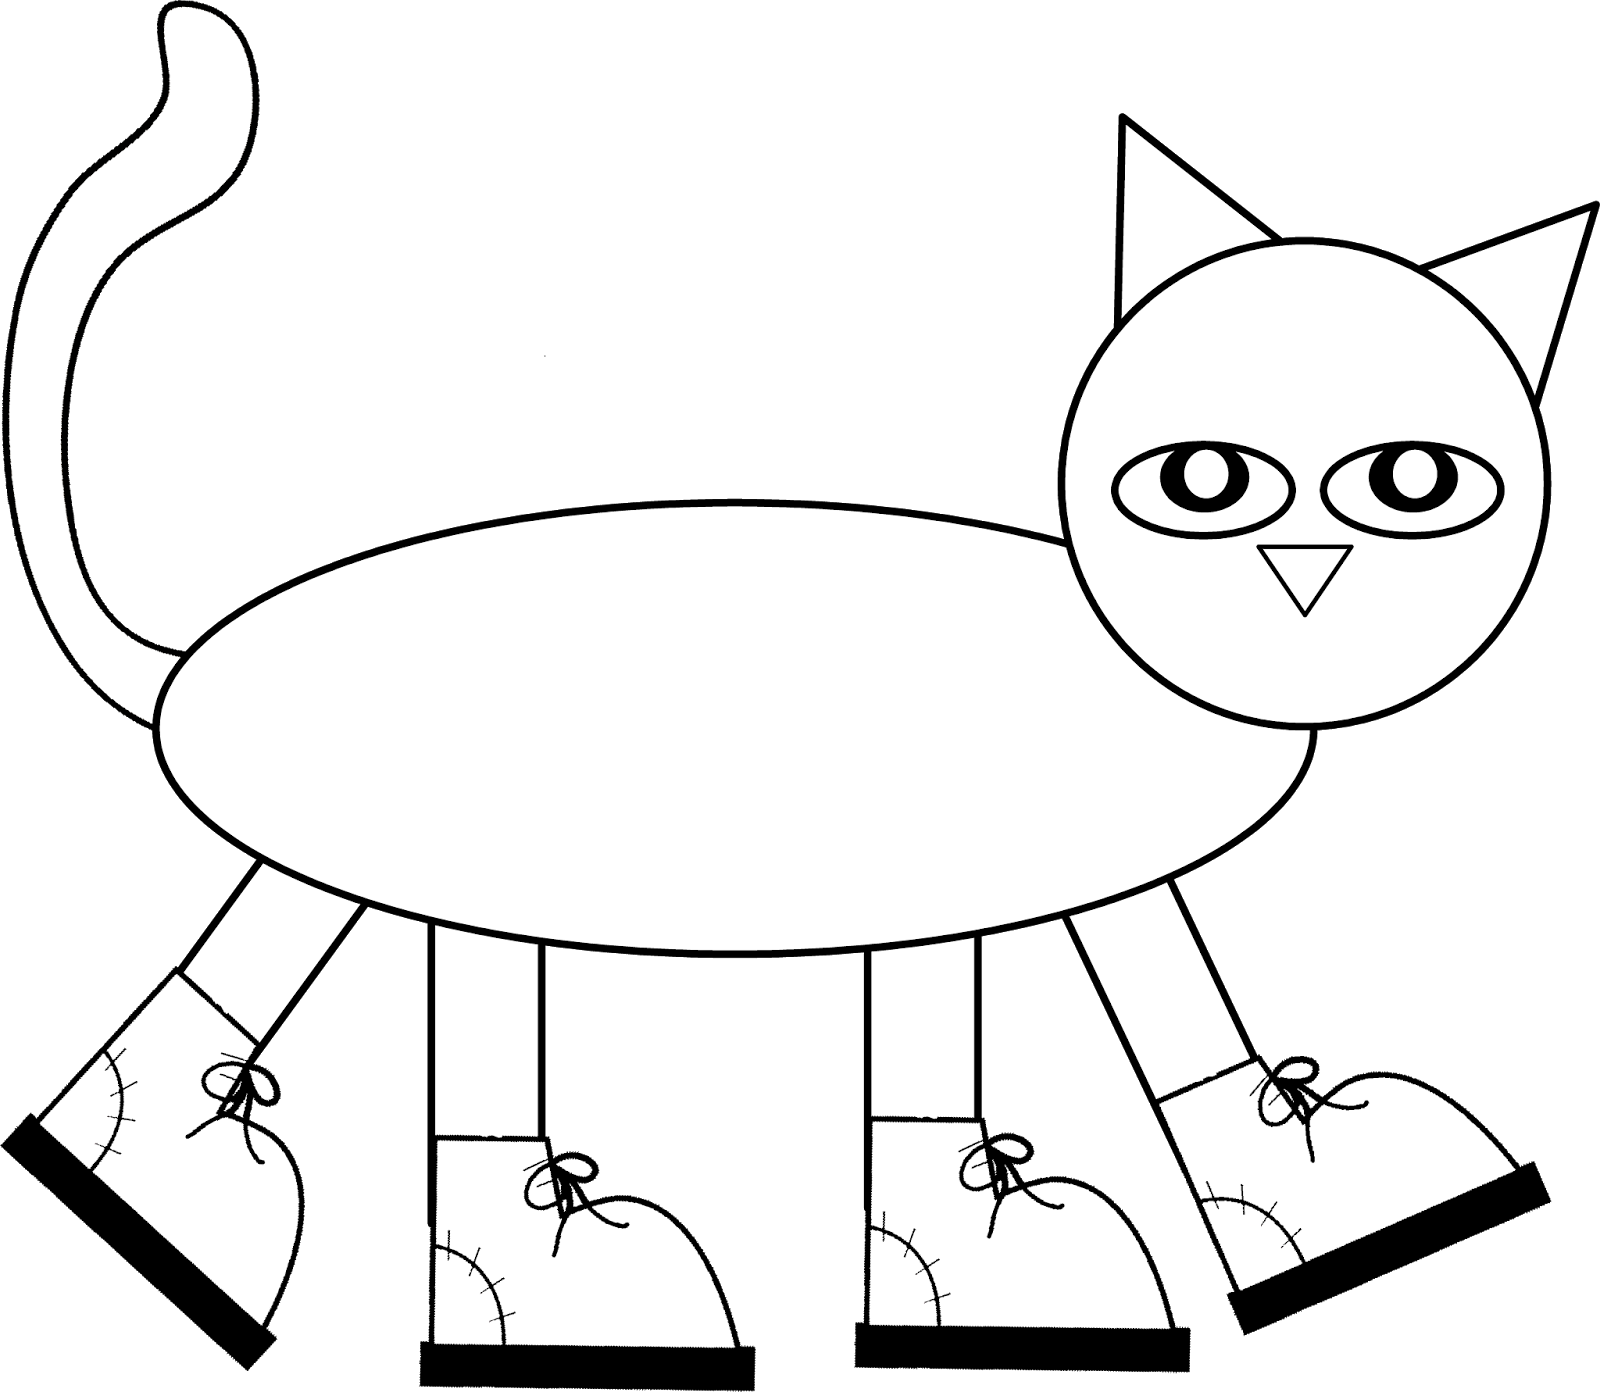 cat eye coloring pages - photo#38